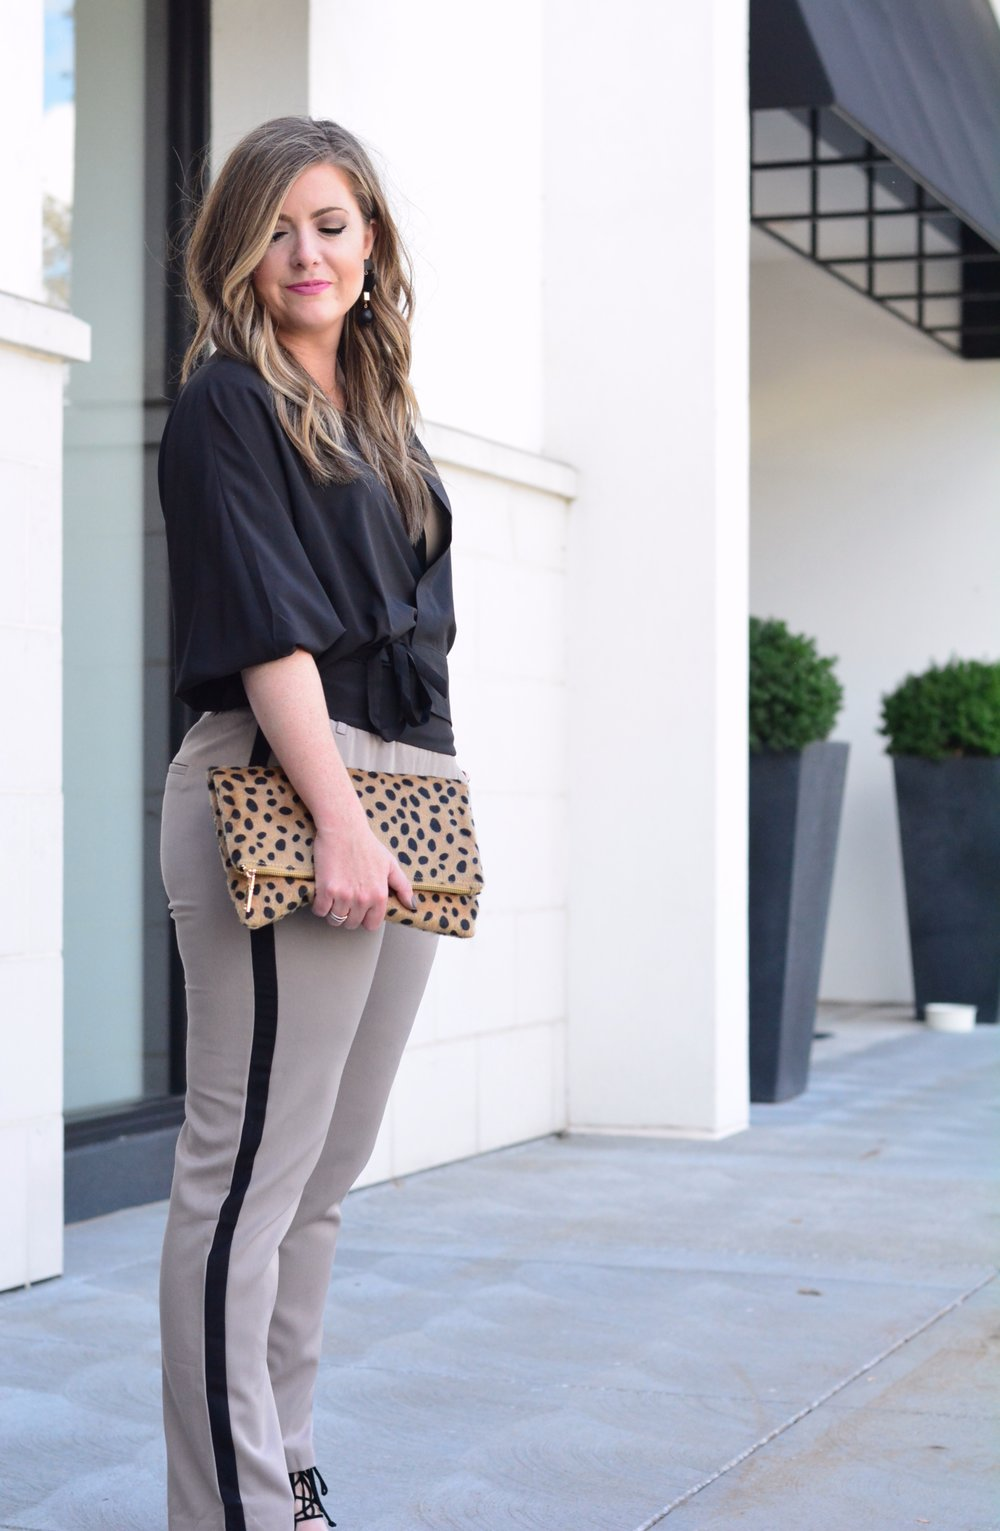 Black top and tuxedo pants